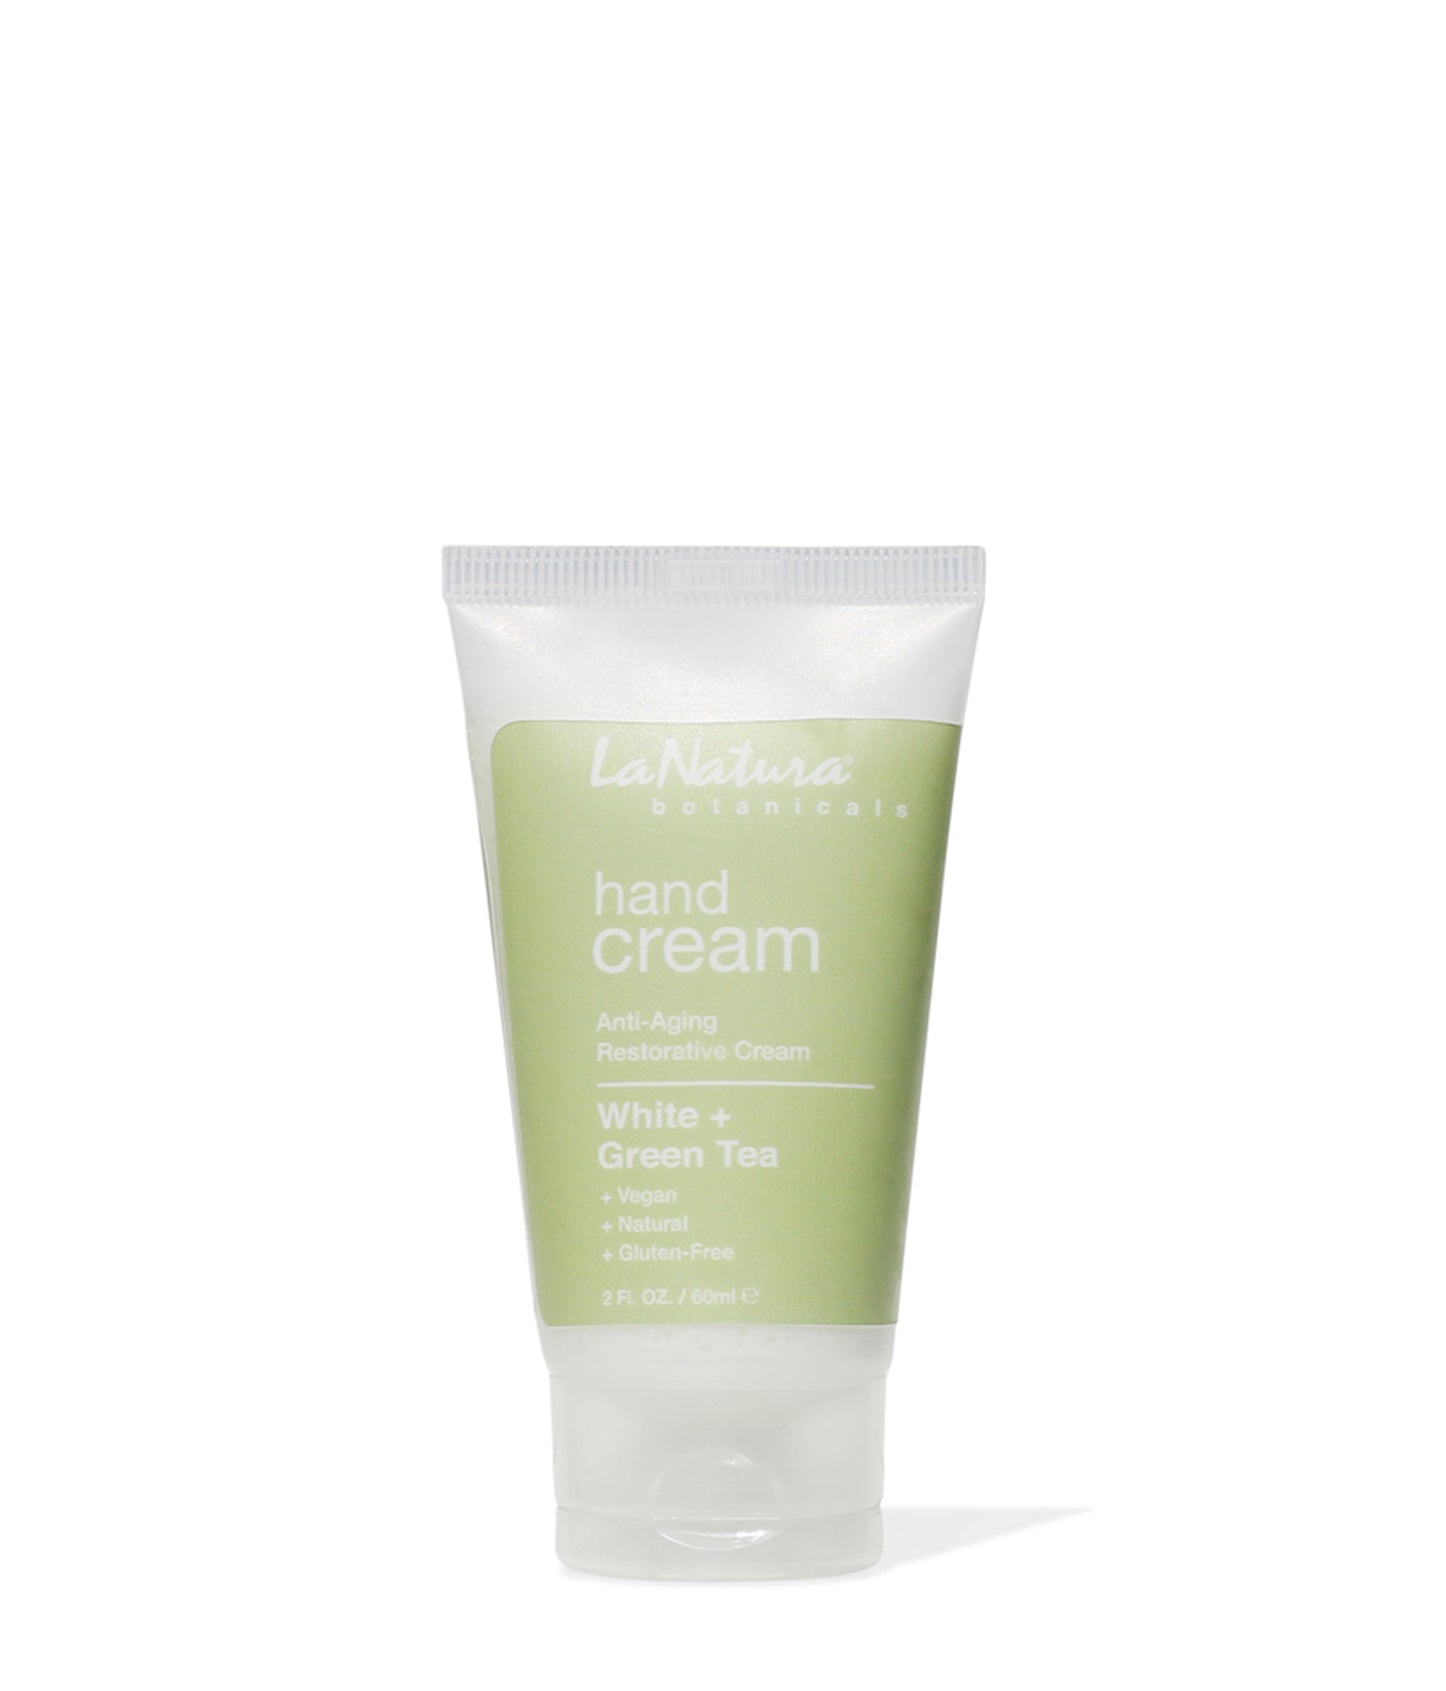 White + Green Tea Hand Cream - 2 oz